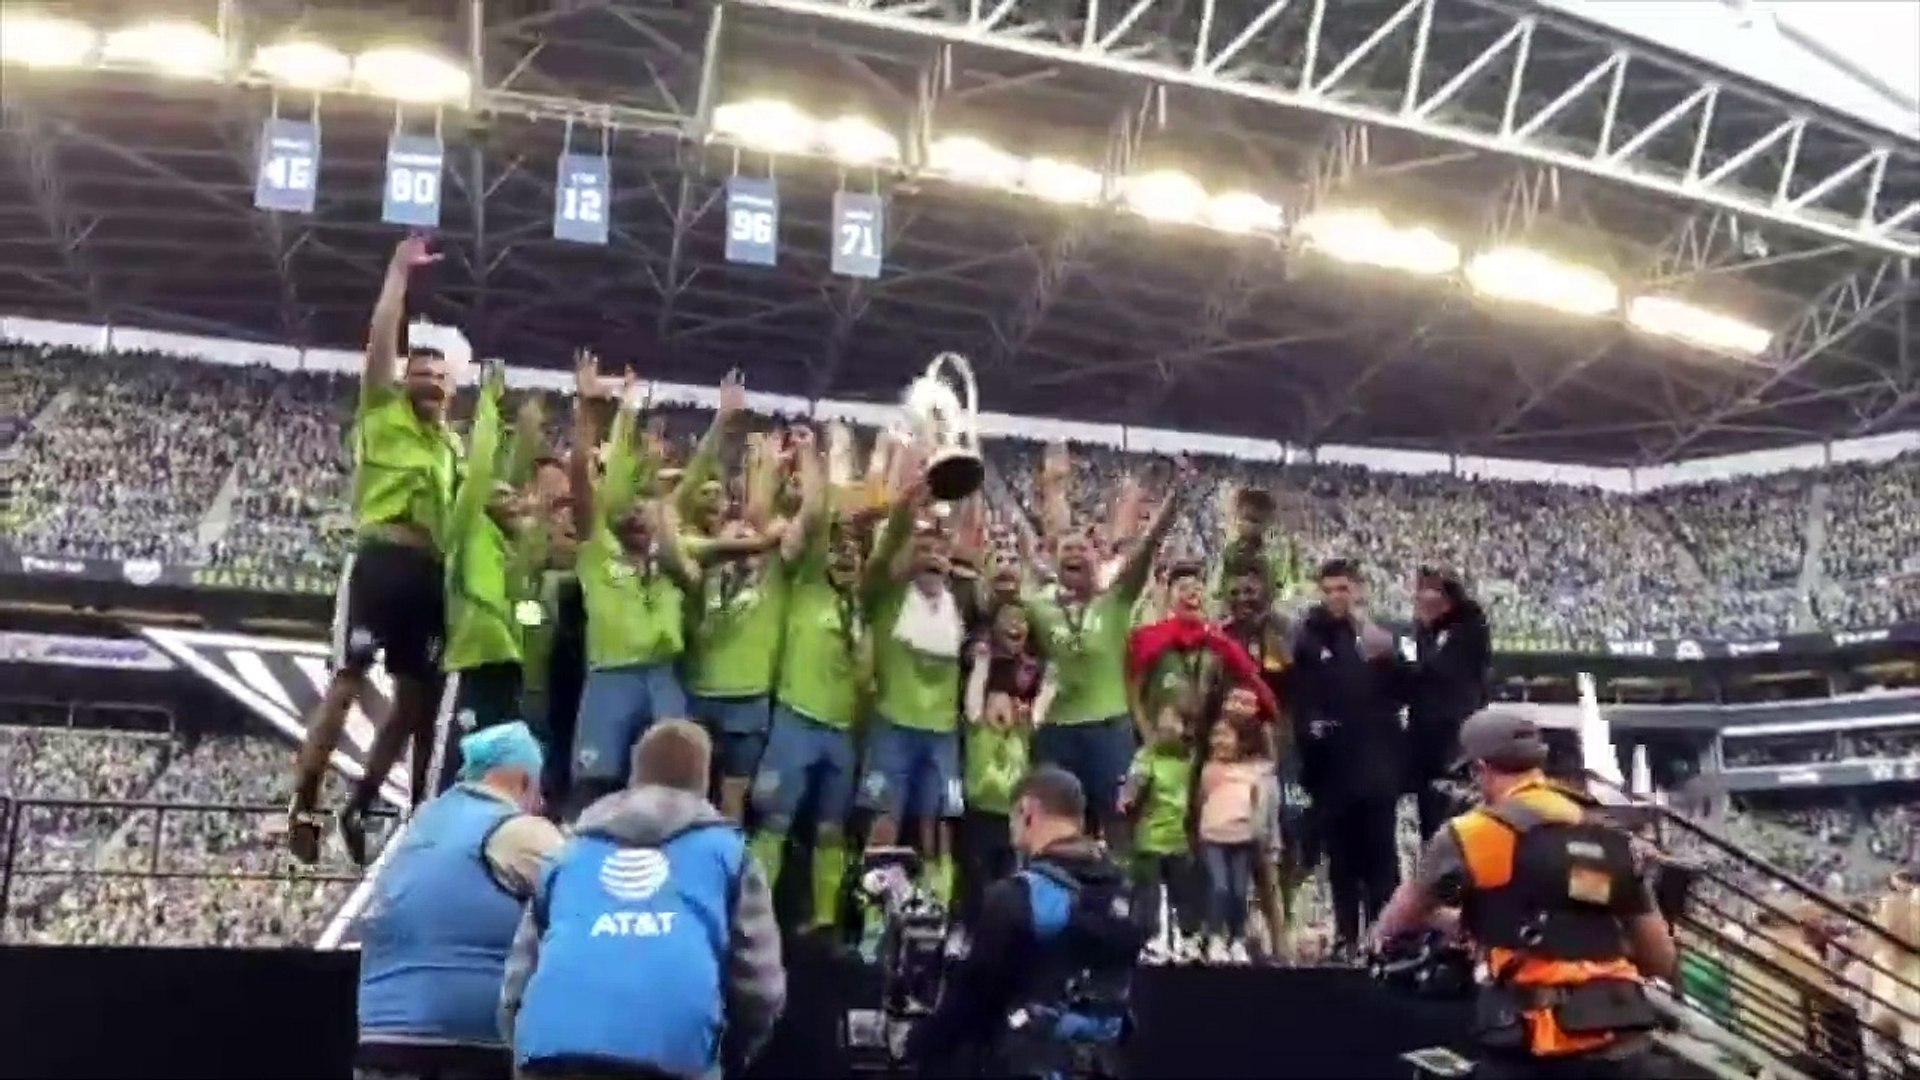 Football - The Seattle Sounders Win The 2019 MLS Cup Title